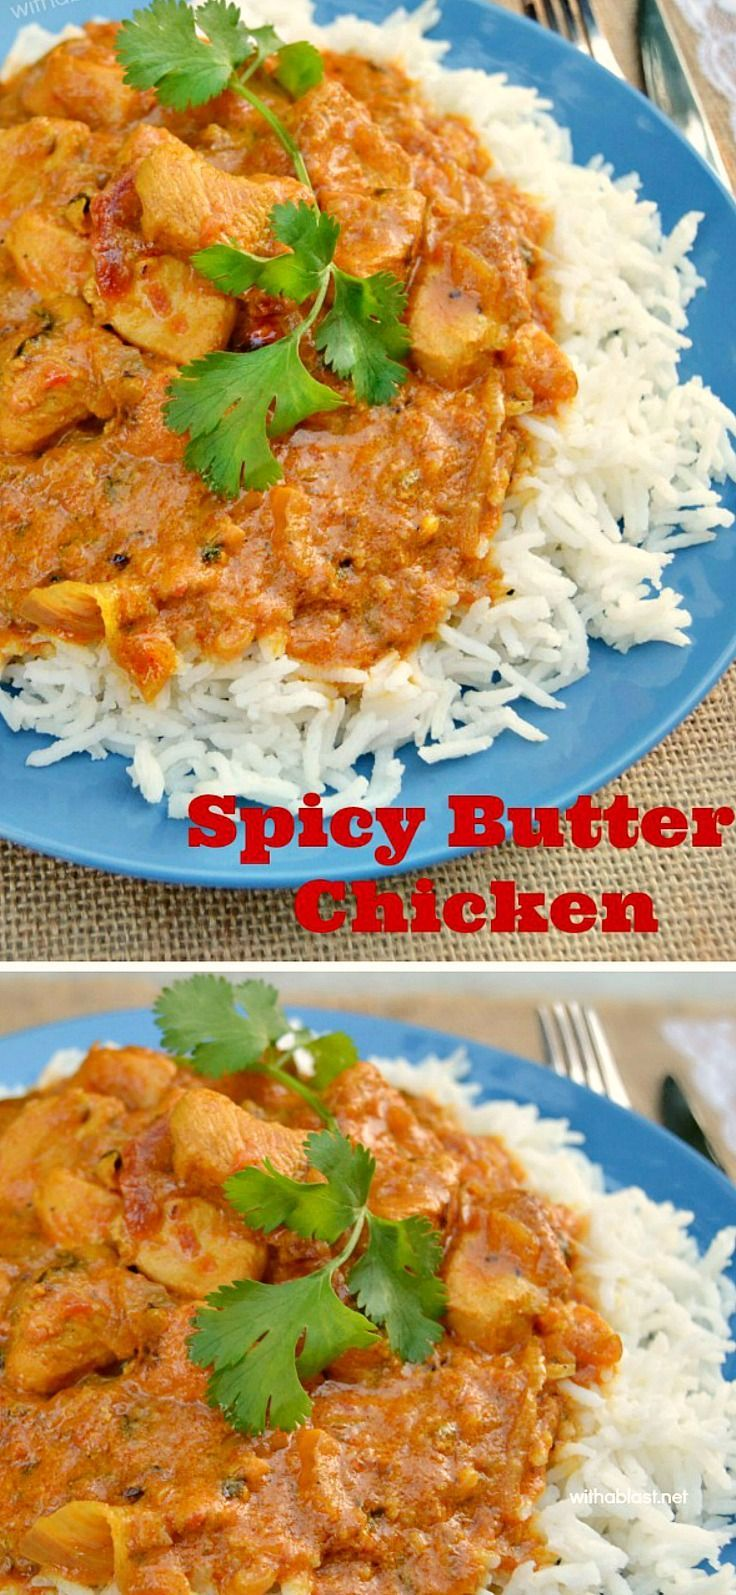 The best spicy butter chicken recipe quick and easy comfort food the best spicy butter chicken recipe quick and easy comfort food butterchicken easychickenrecipes forumfinder